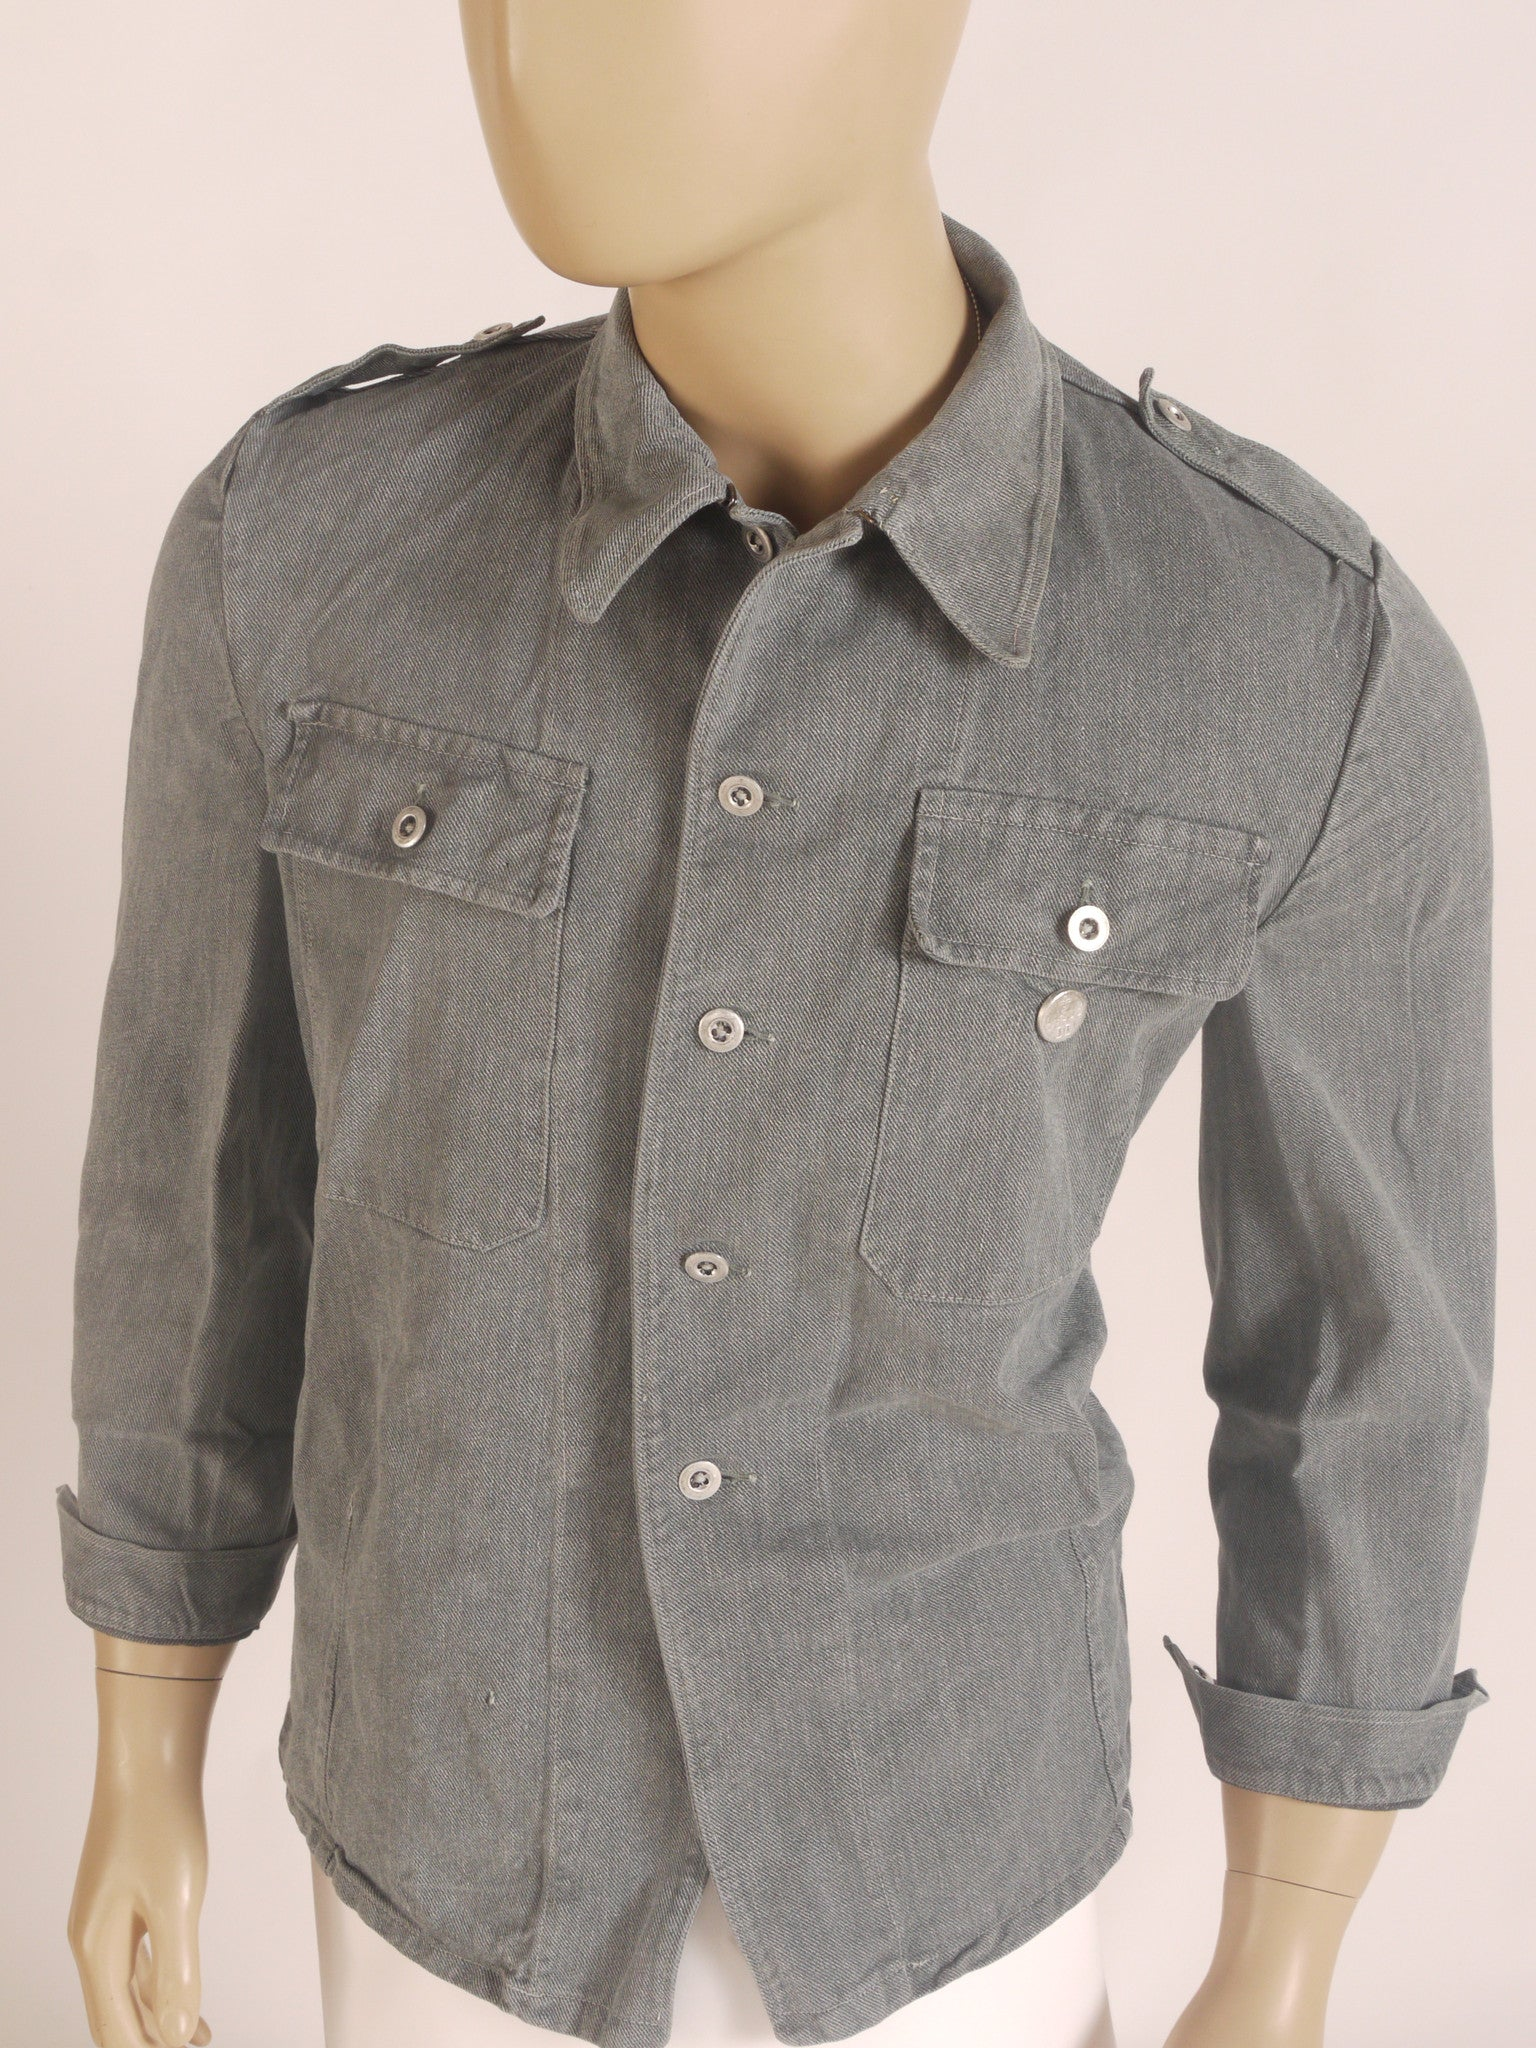 Swedish denim shirt/jacket